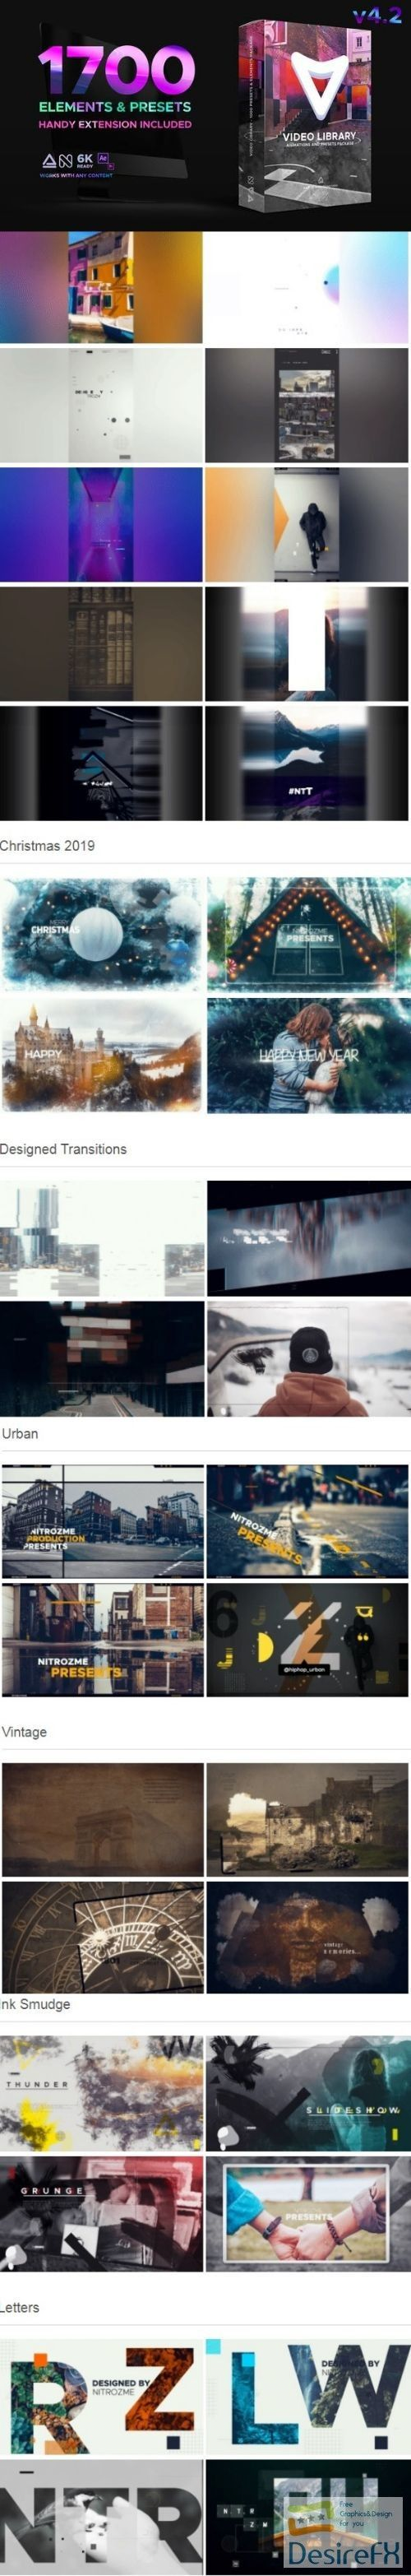 Videohive Video Library Video Presets Package V4 2 21390377